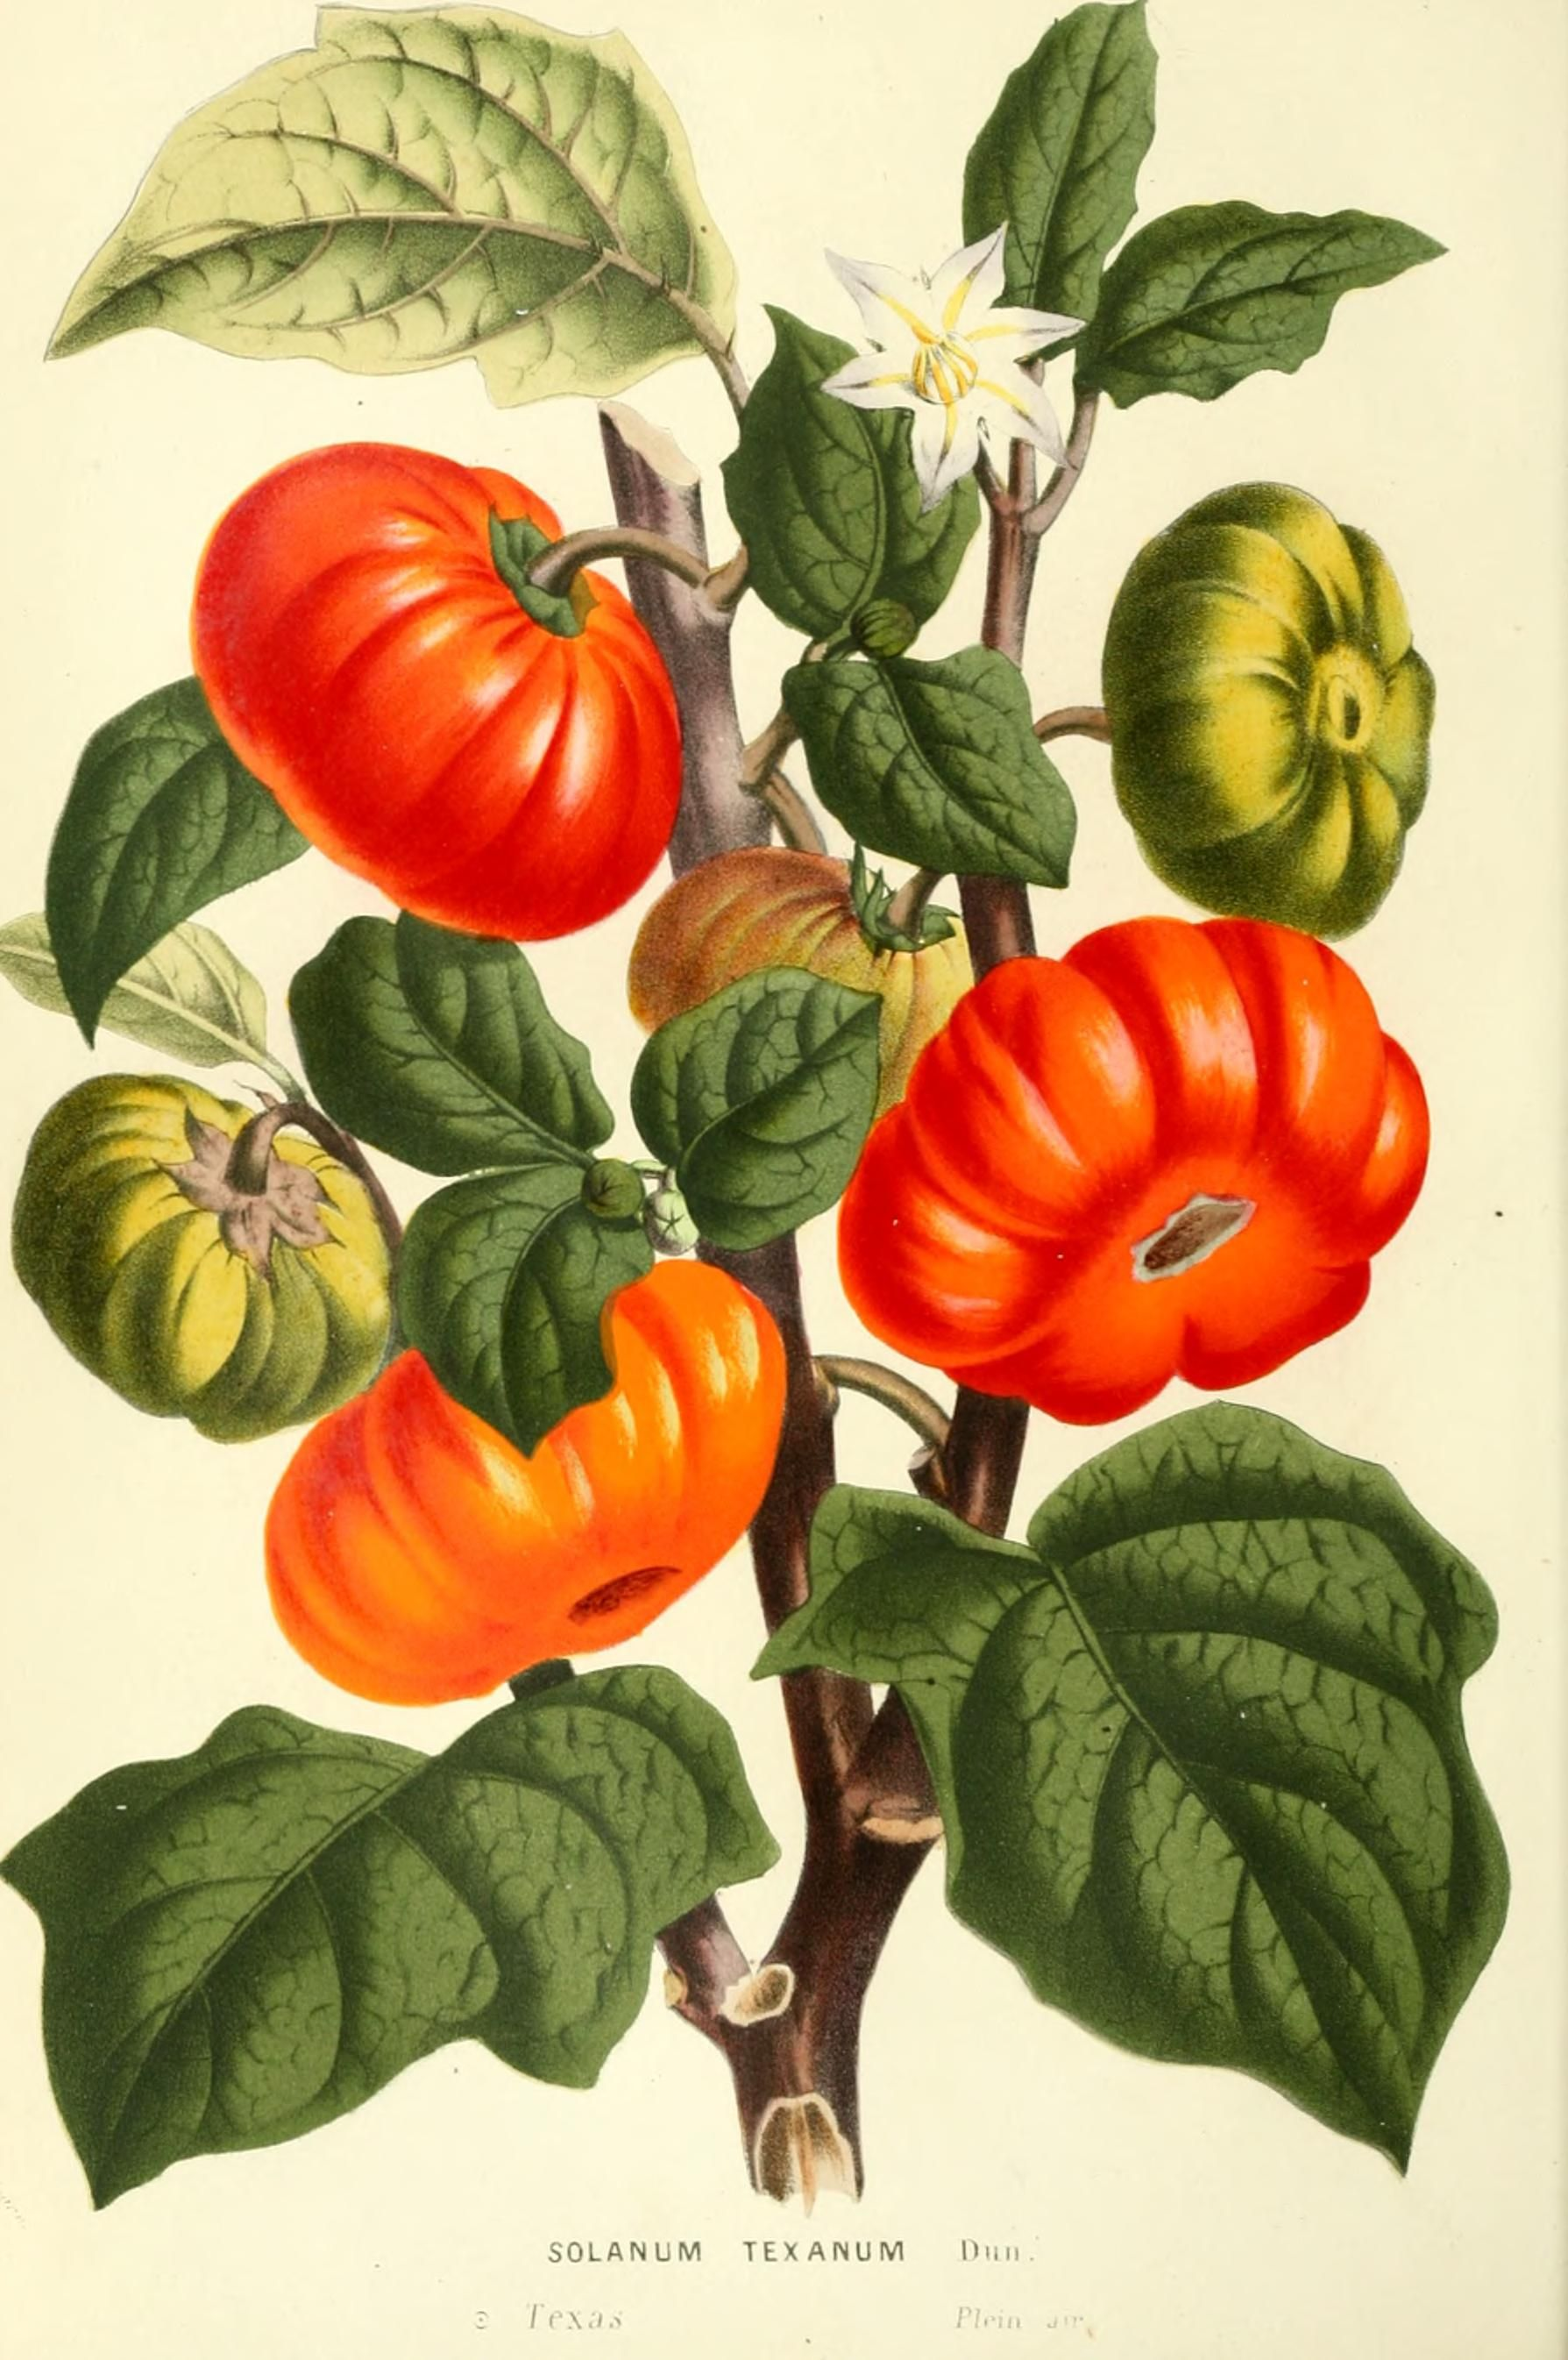 What is the botanical name for the tomato plant?